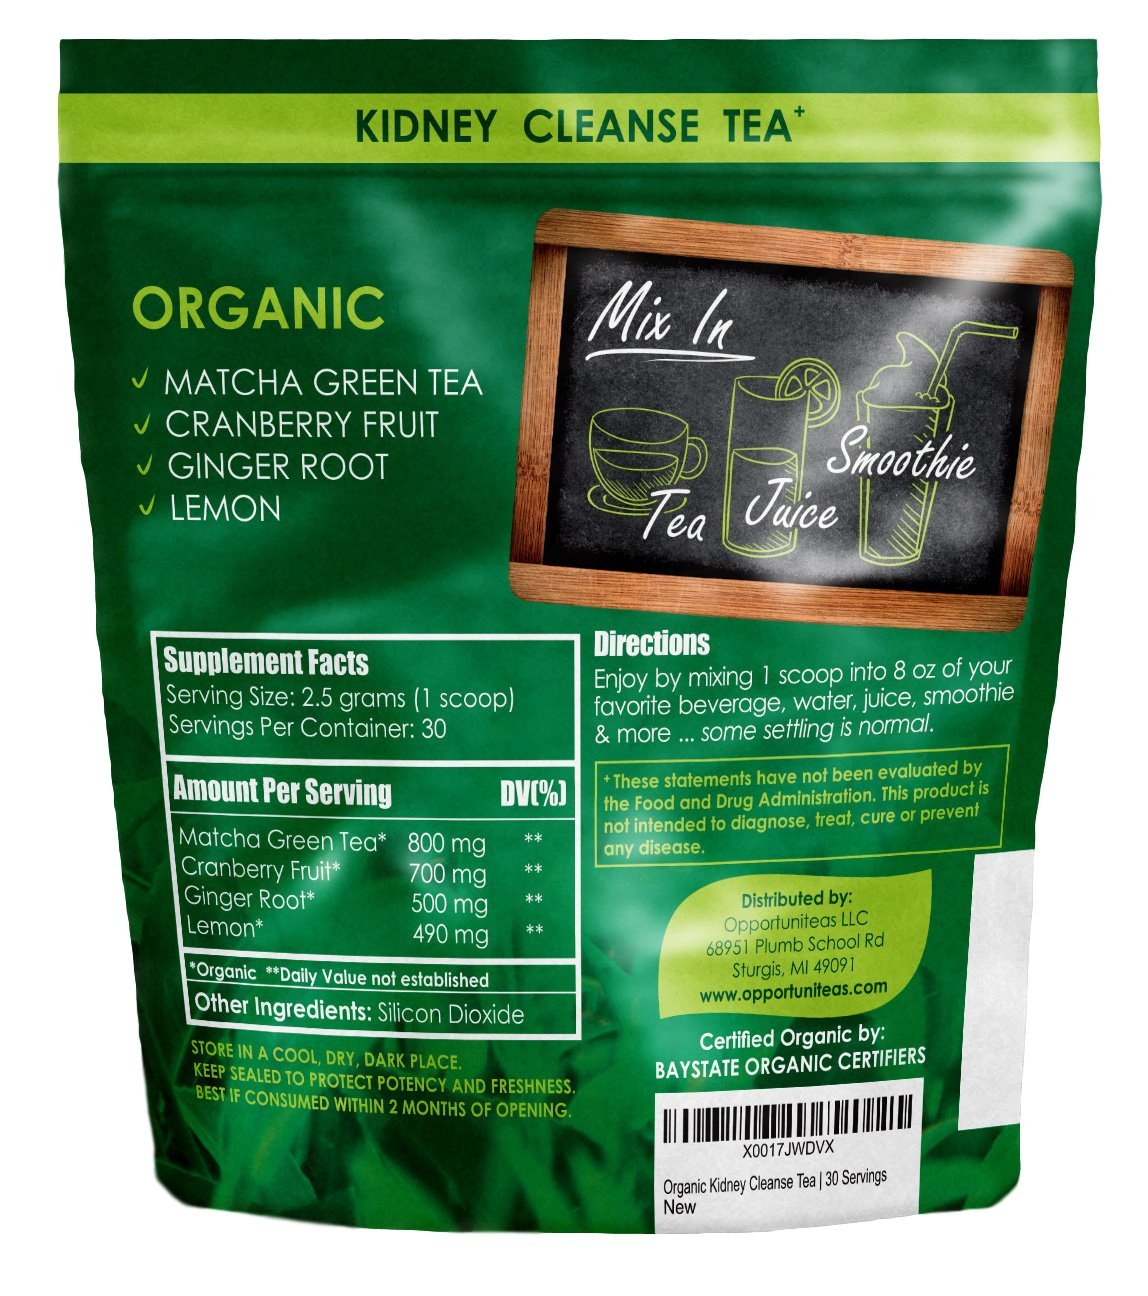 Organic Kidney Cleanse Tea - 4 Superfoods to Mix in Smoothie or Drink -  Matcha Green Tea,